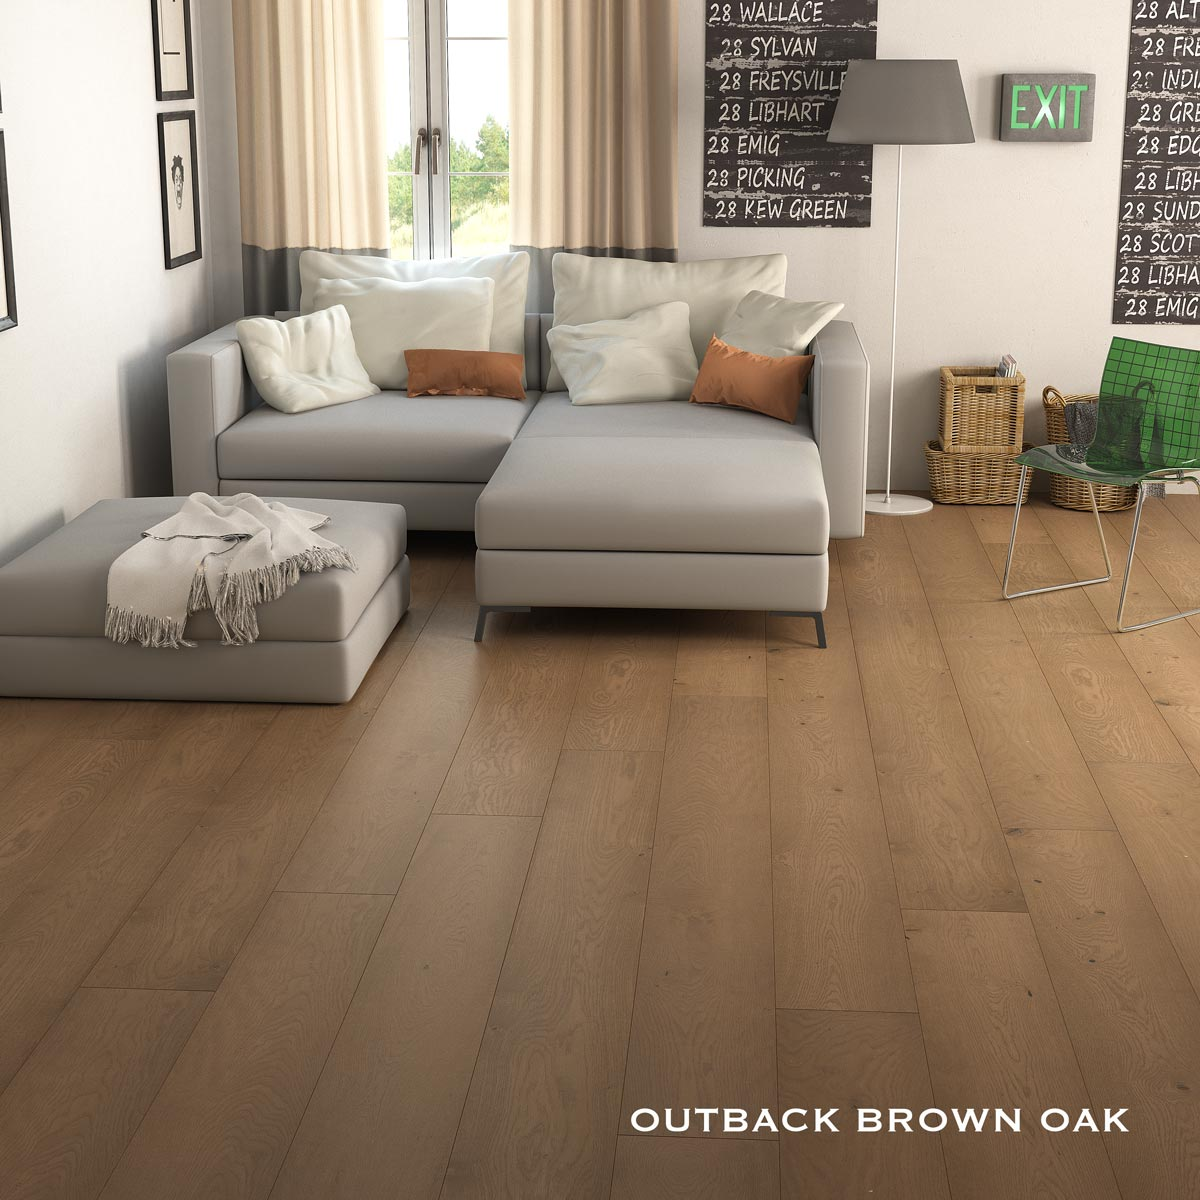 Outback Brown Oak 2